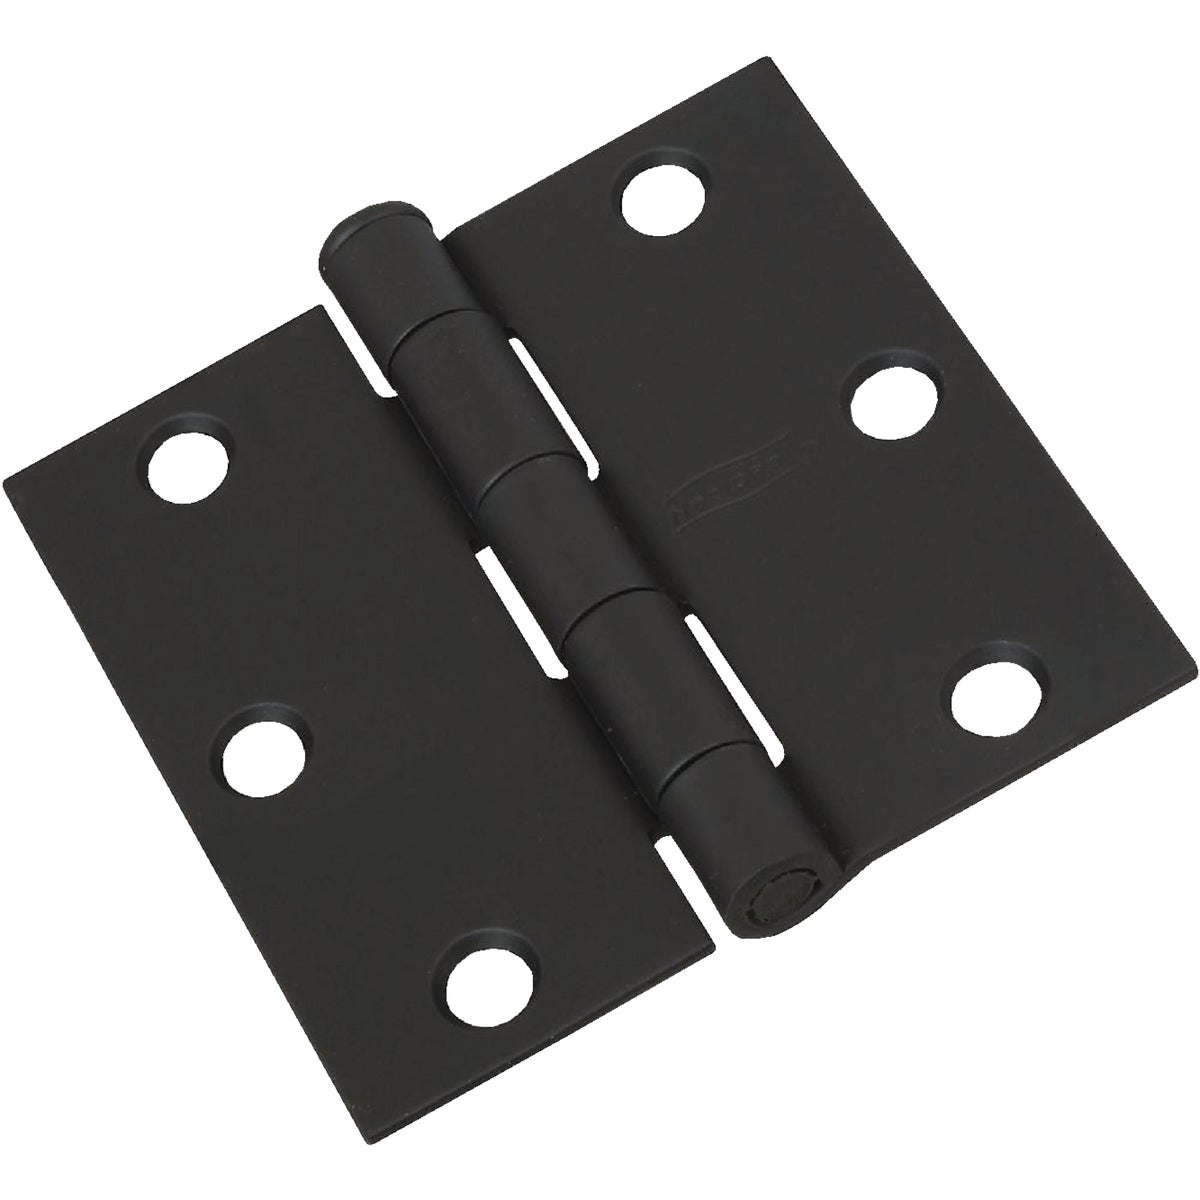 3X3 BLK DOOR HINGE